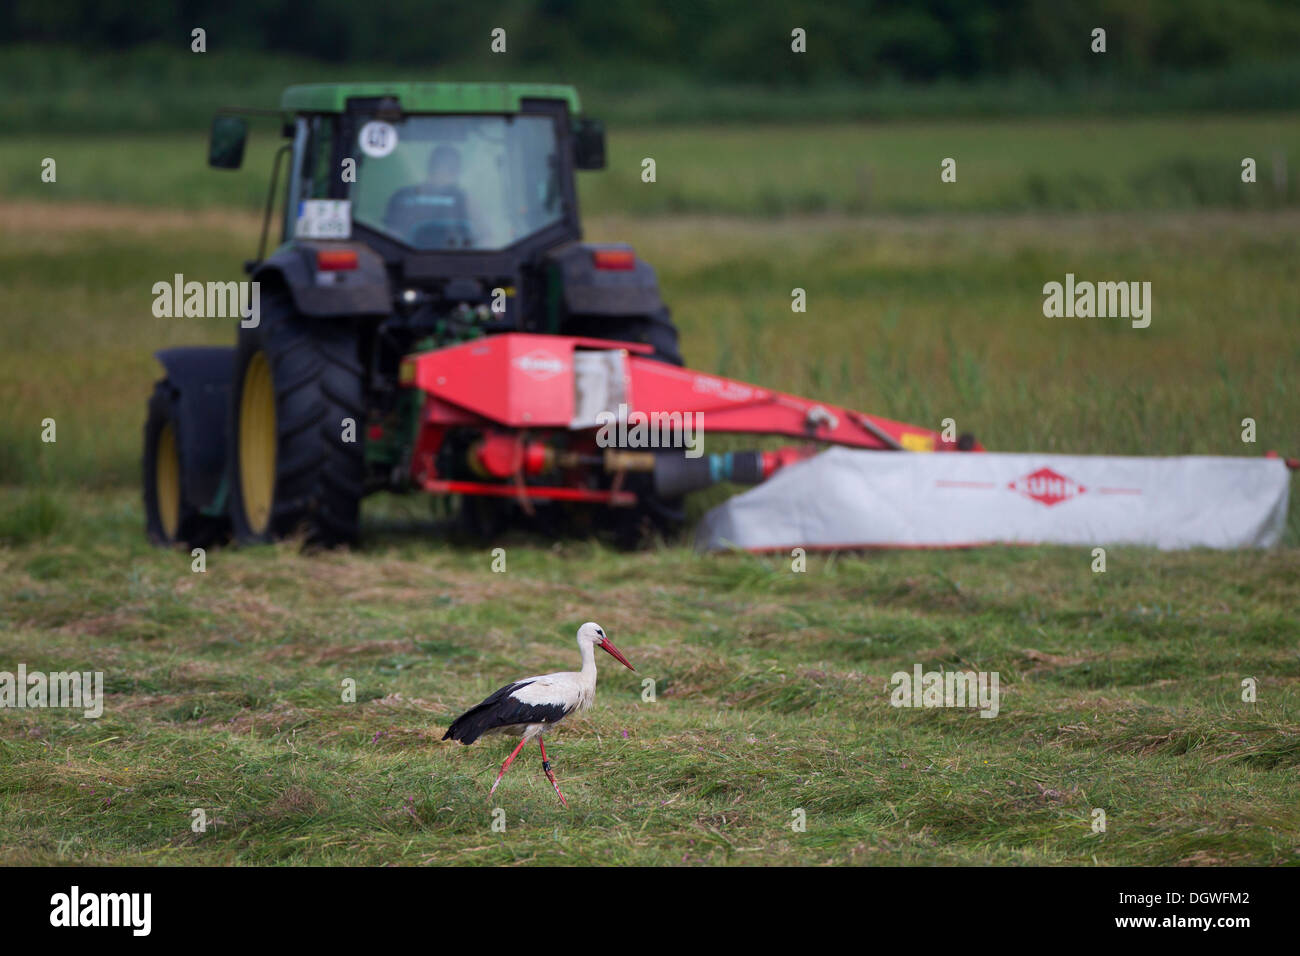 White Stork (Ciconia ciconia) in search of food shortly after a mower has mown a field, Potsdam, Brandenburg, Germany - Stock Image